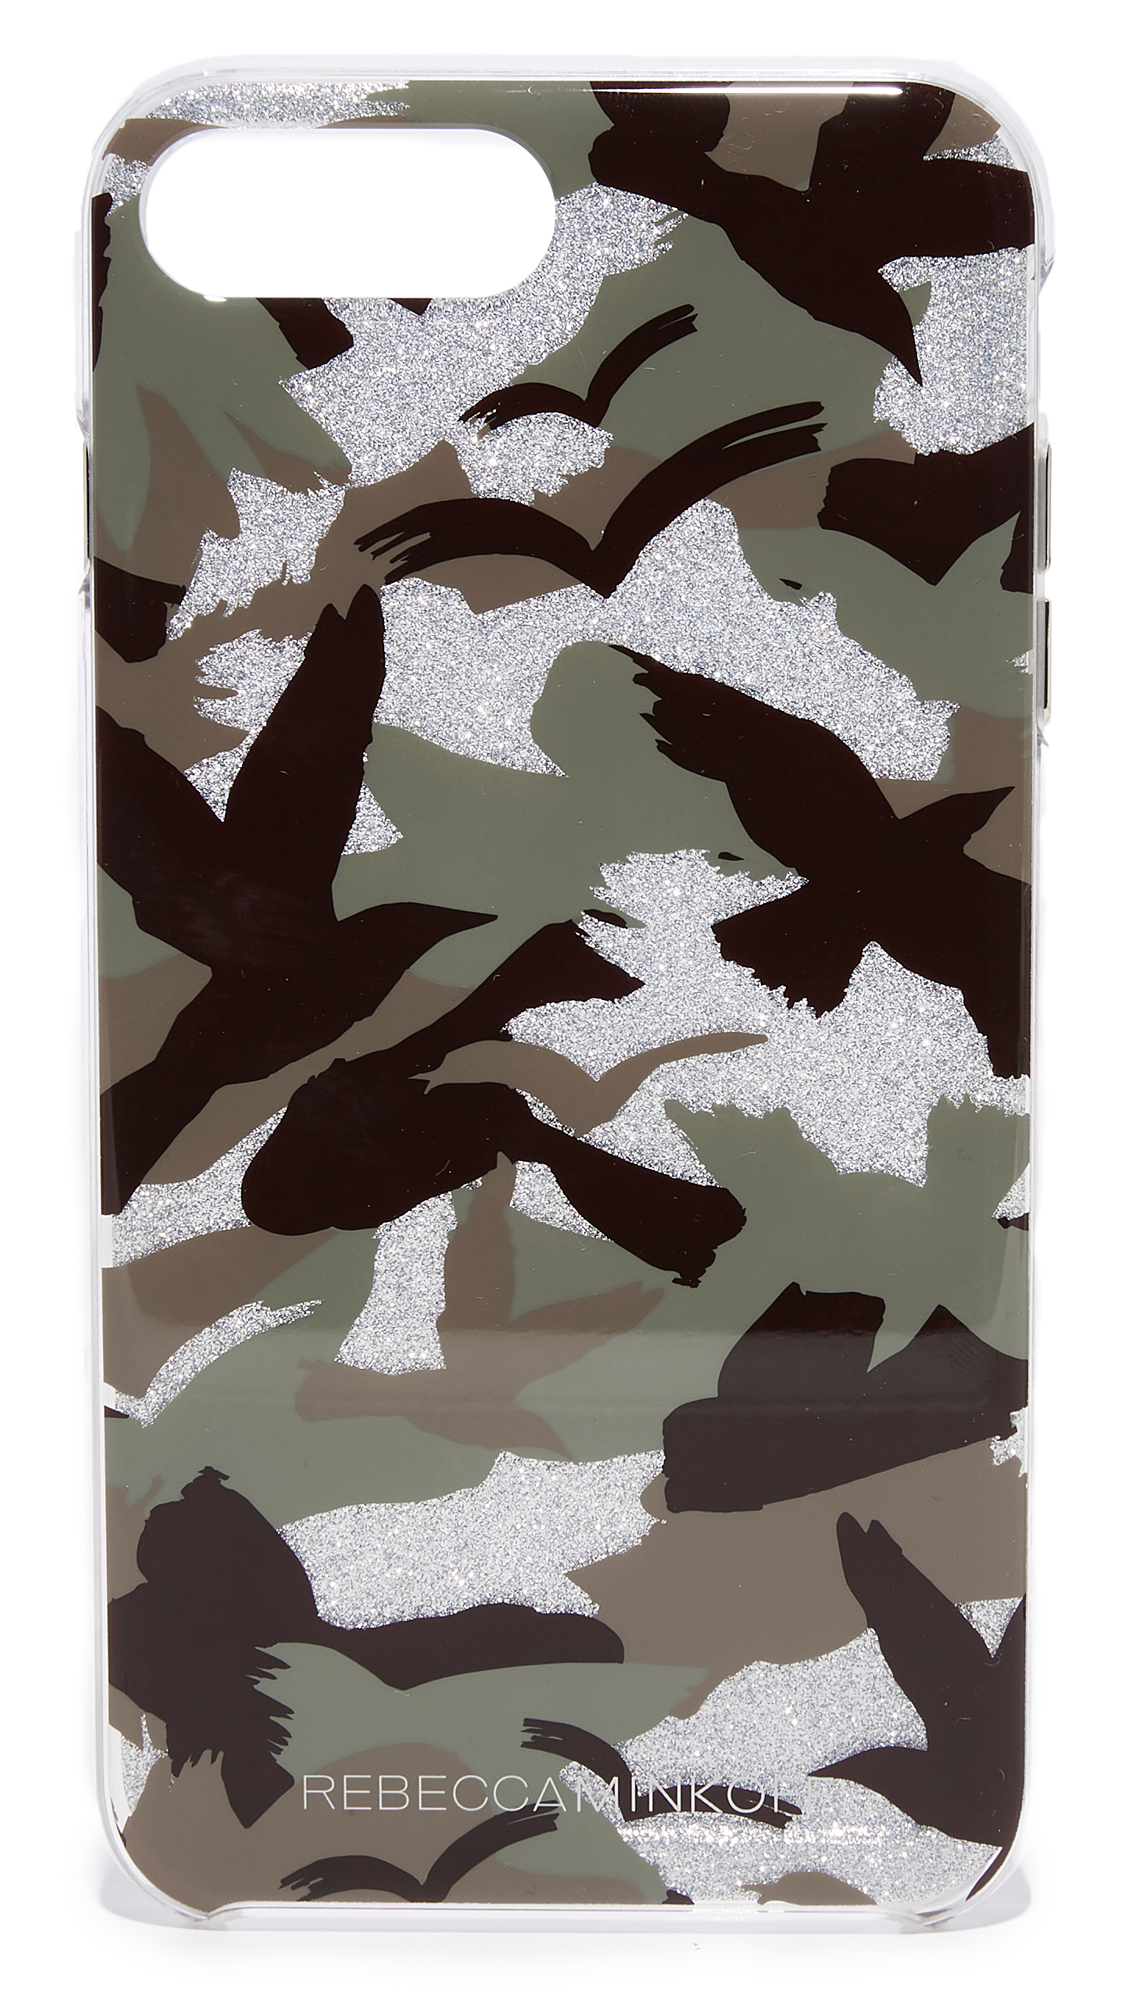 送料・関税込み!!Camo Bird iPhone 7 Plus Cas iphone ケース